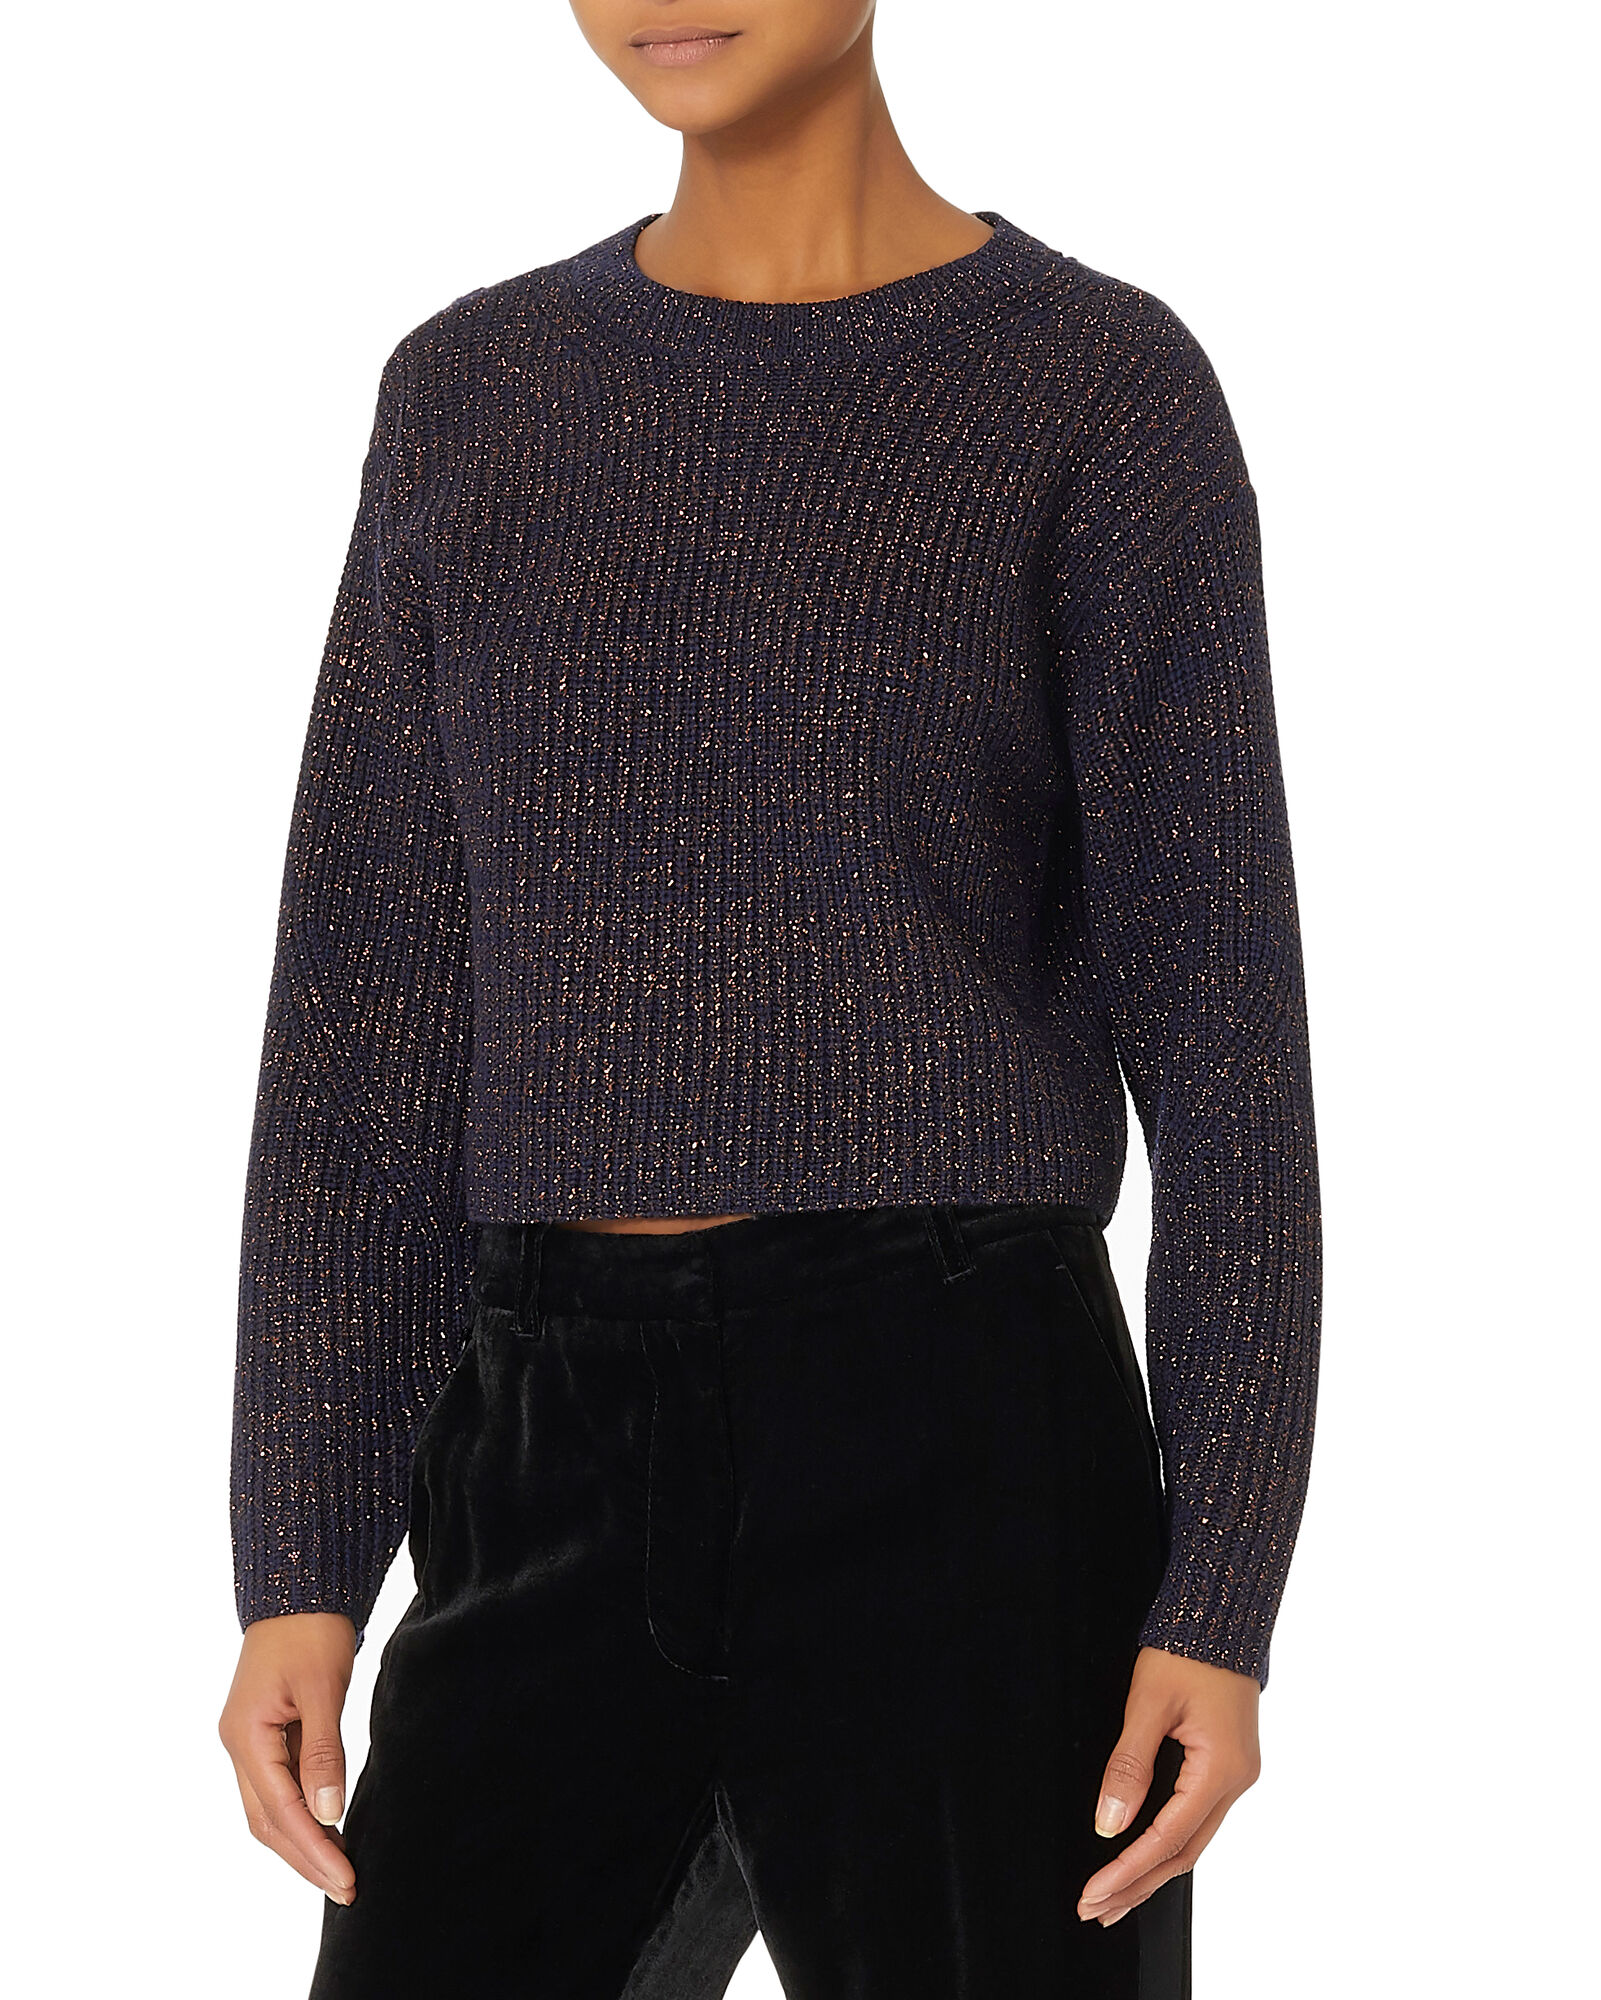 Jubilee Lurex Navy Cropped Sweater